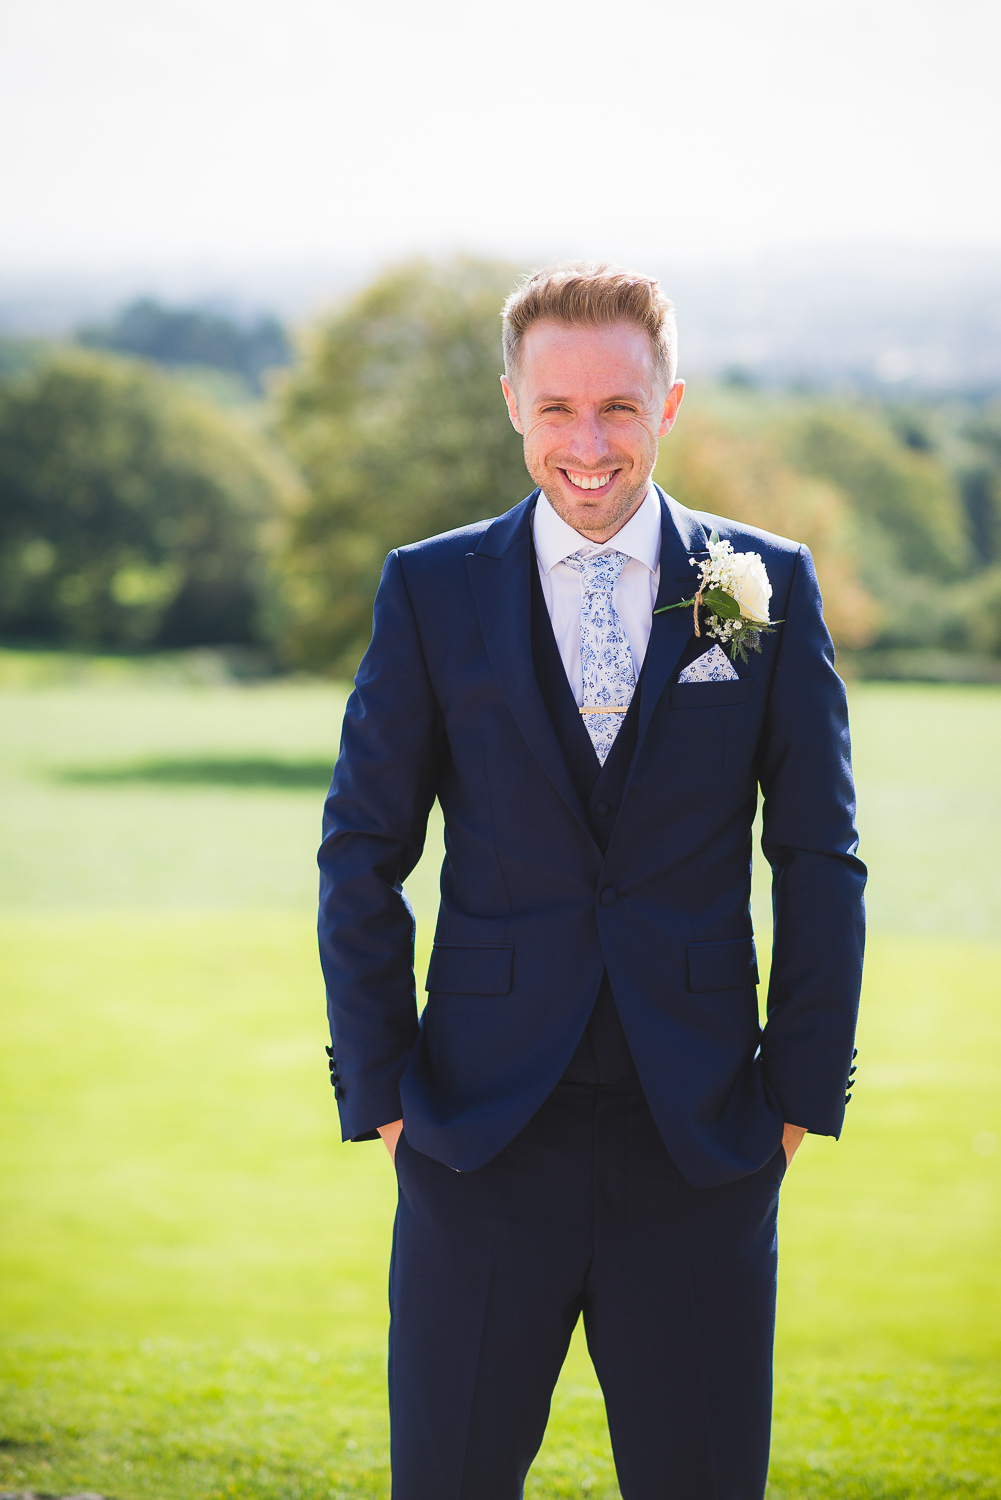 cardiff-wedding-photographer-new-house-country-hotel-south-wales-13.jpg